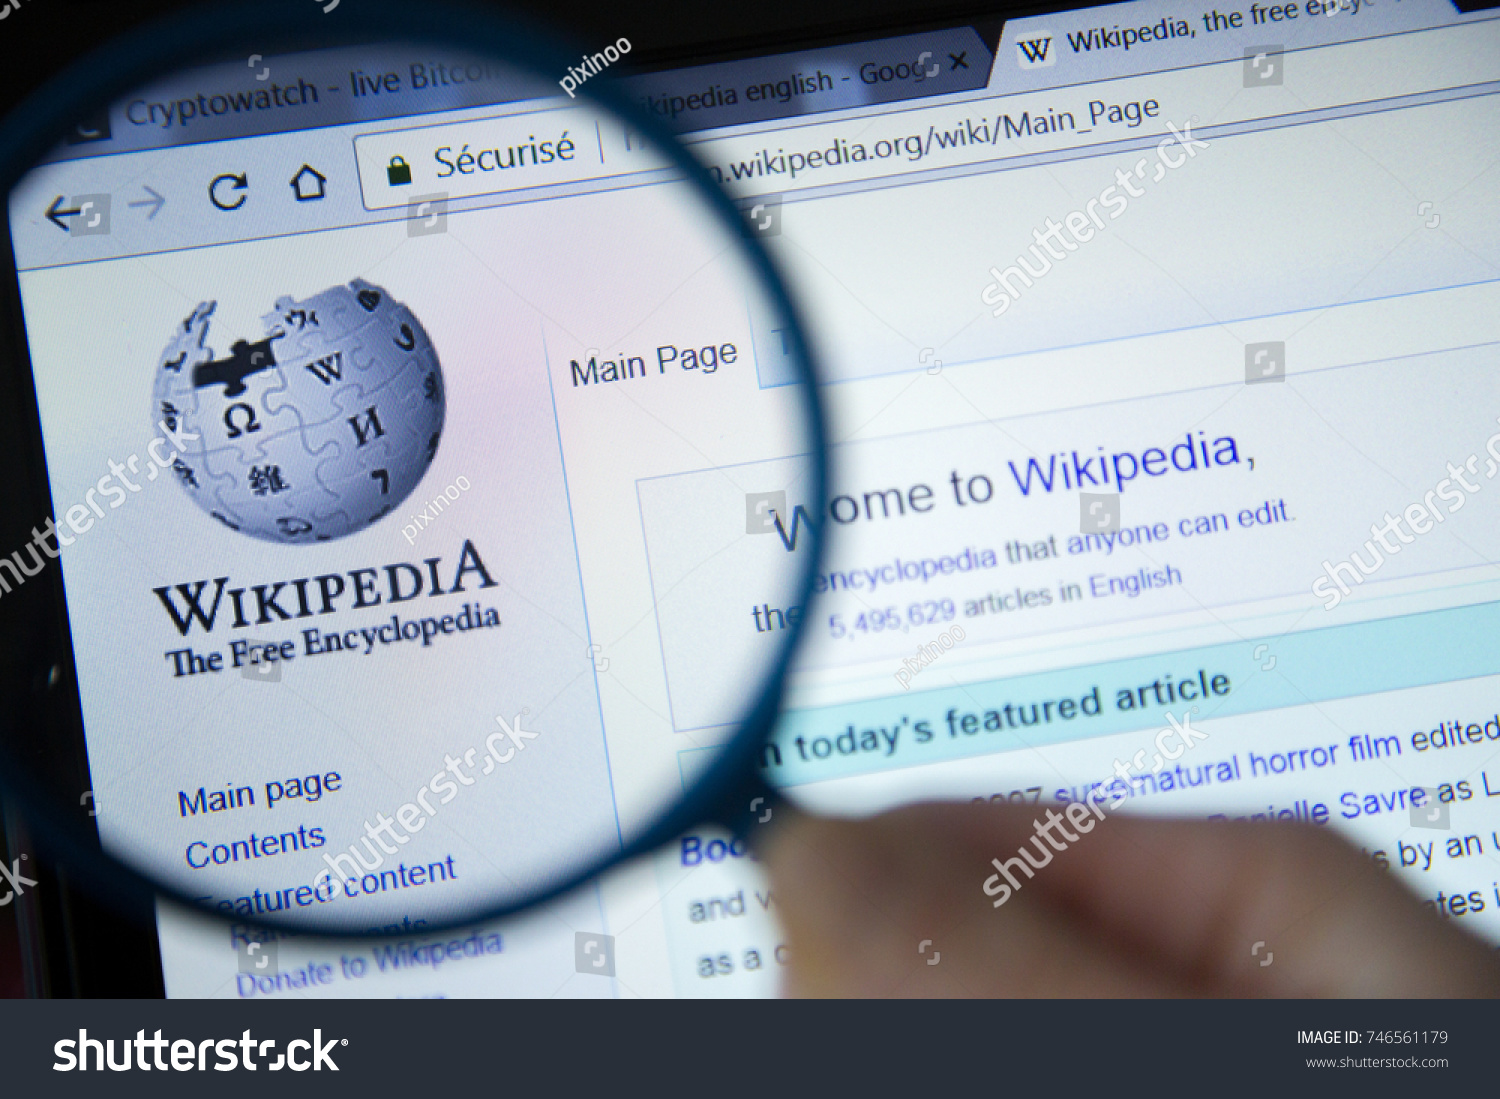 Paris France October 19 2017 Wikipedia Stock Photo Edit Now Circle Diagram The Free Encyclopedia Homepage On Computer Screen Under